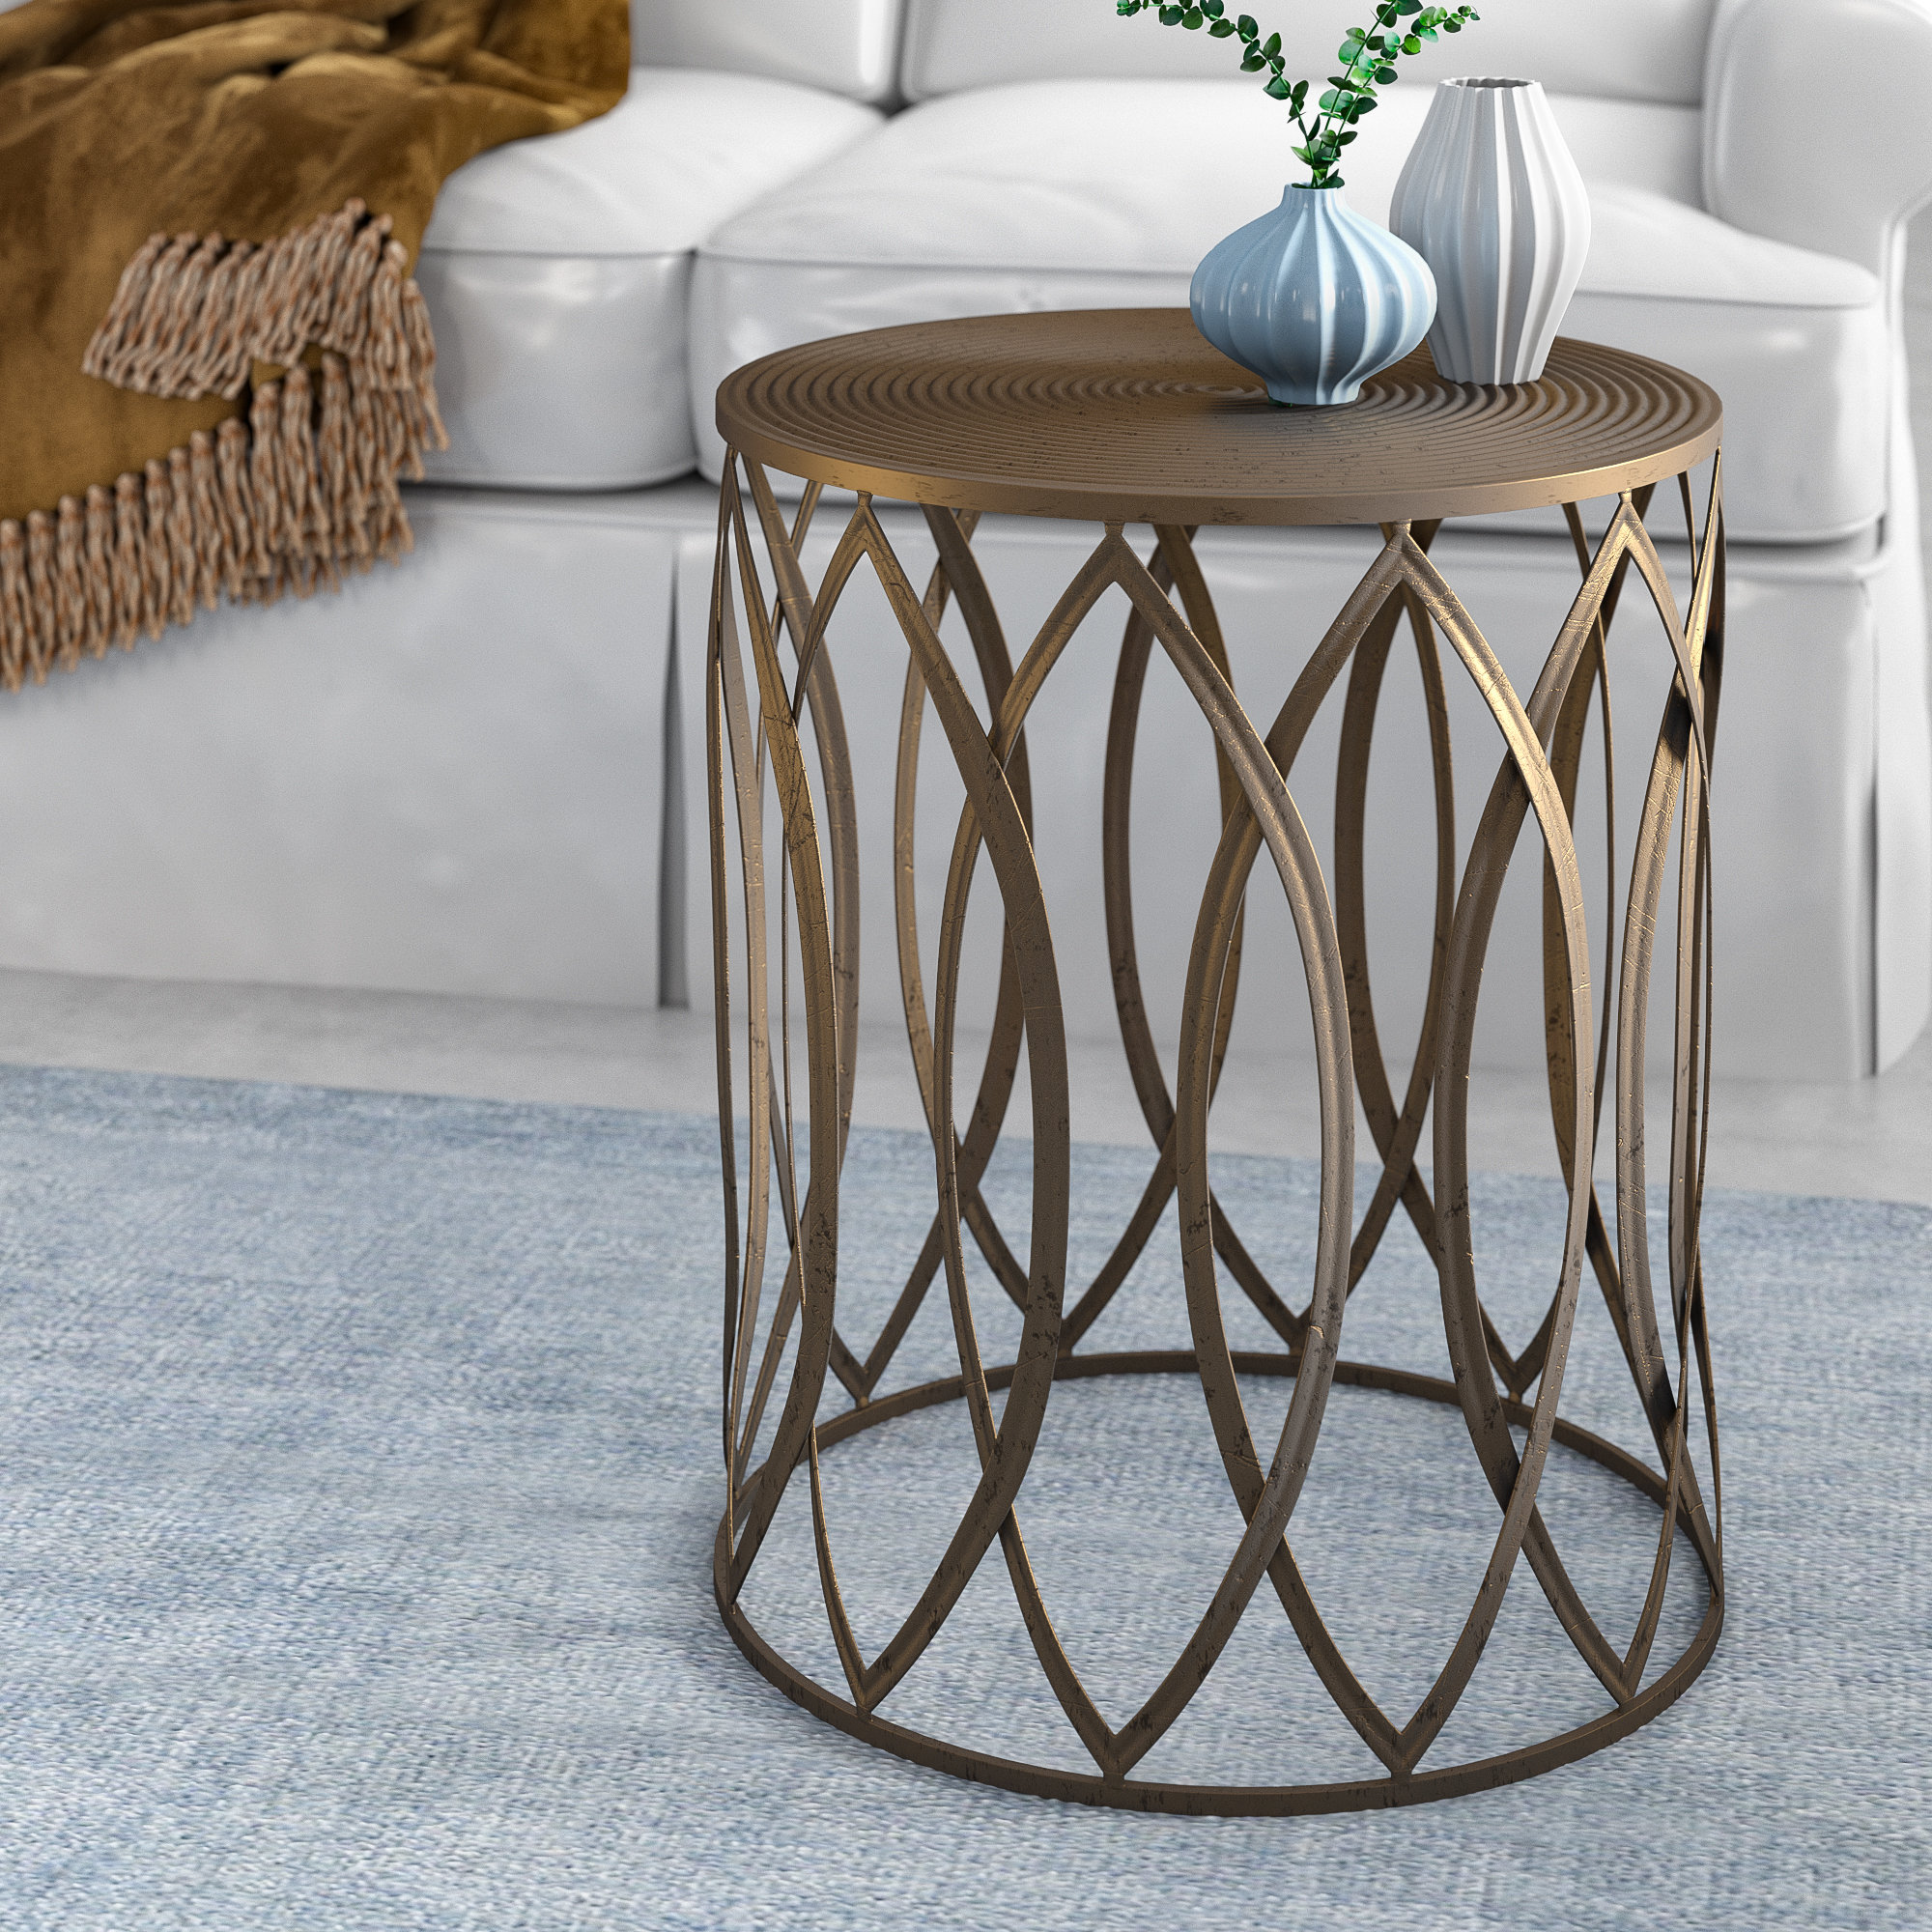 brushed gold side table stanley end wire accent wood kitchen sets white ginger jar lamps french braid quilt pattern runner coffee height round glass nesting tables nautical